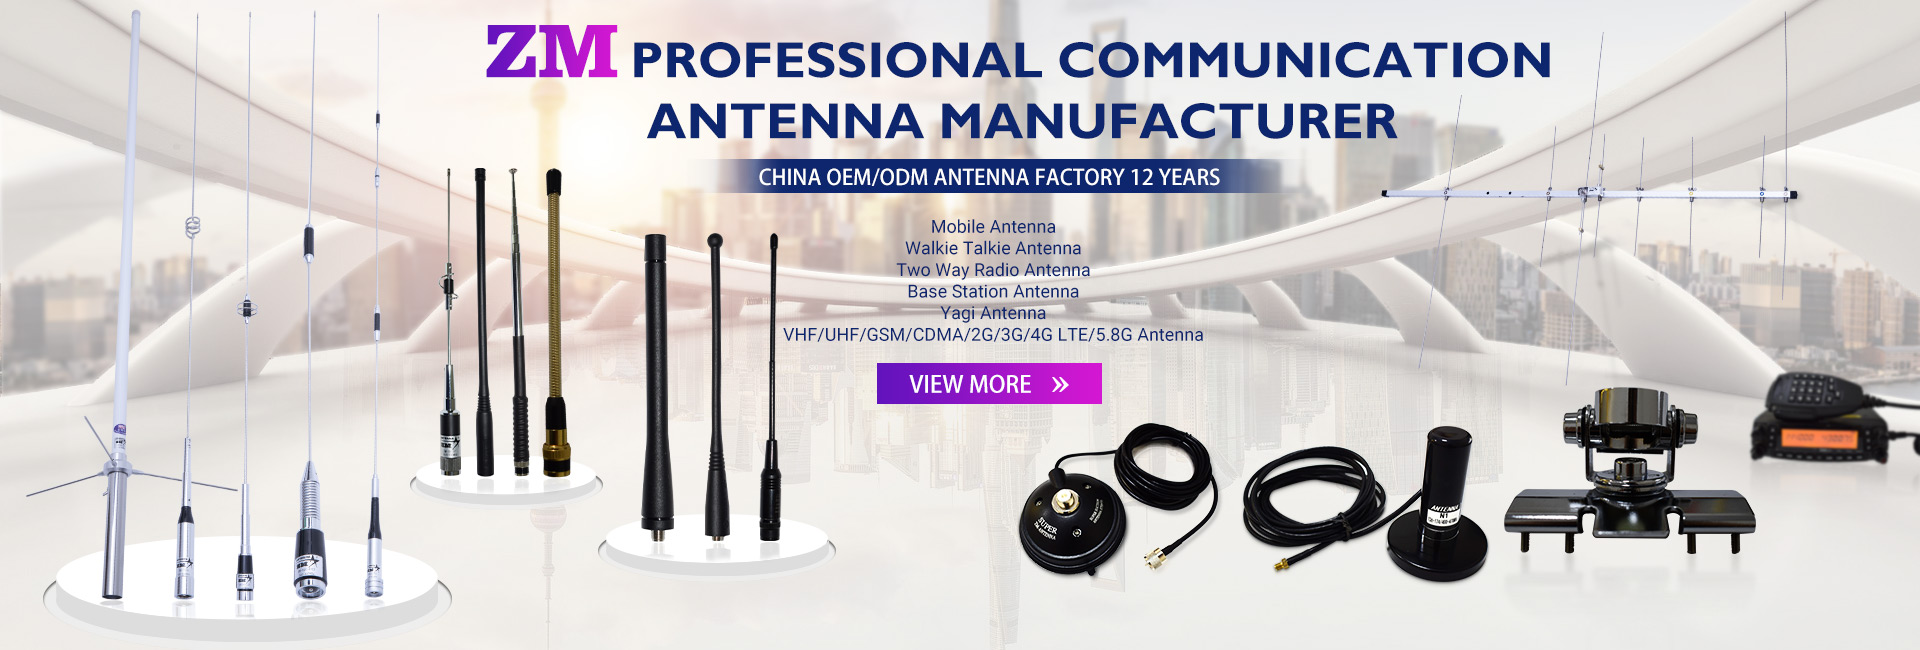 Professional Communication Antenna Fabricante